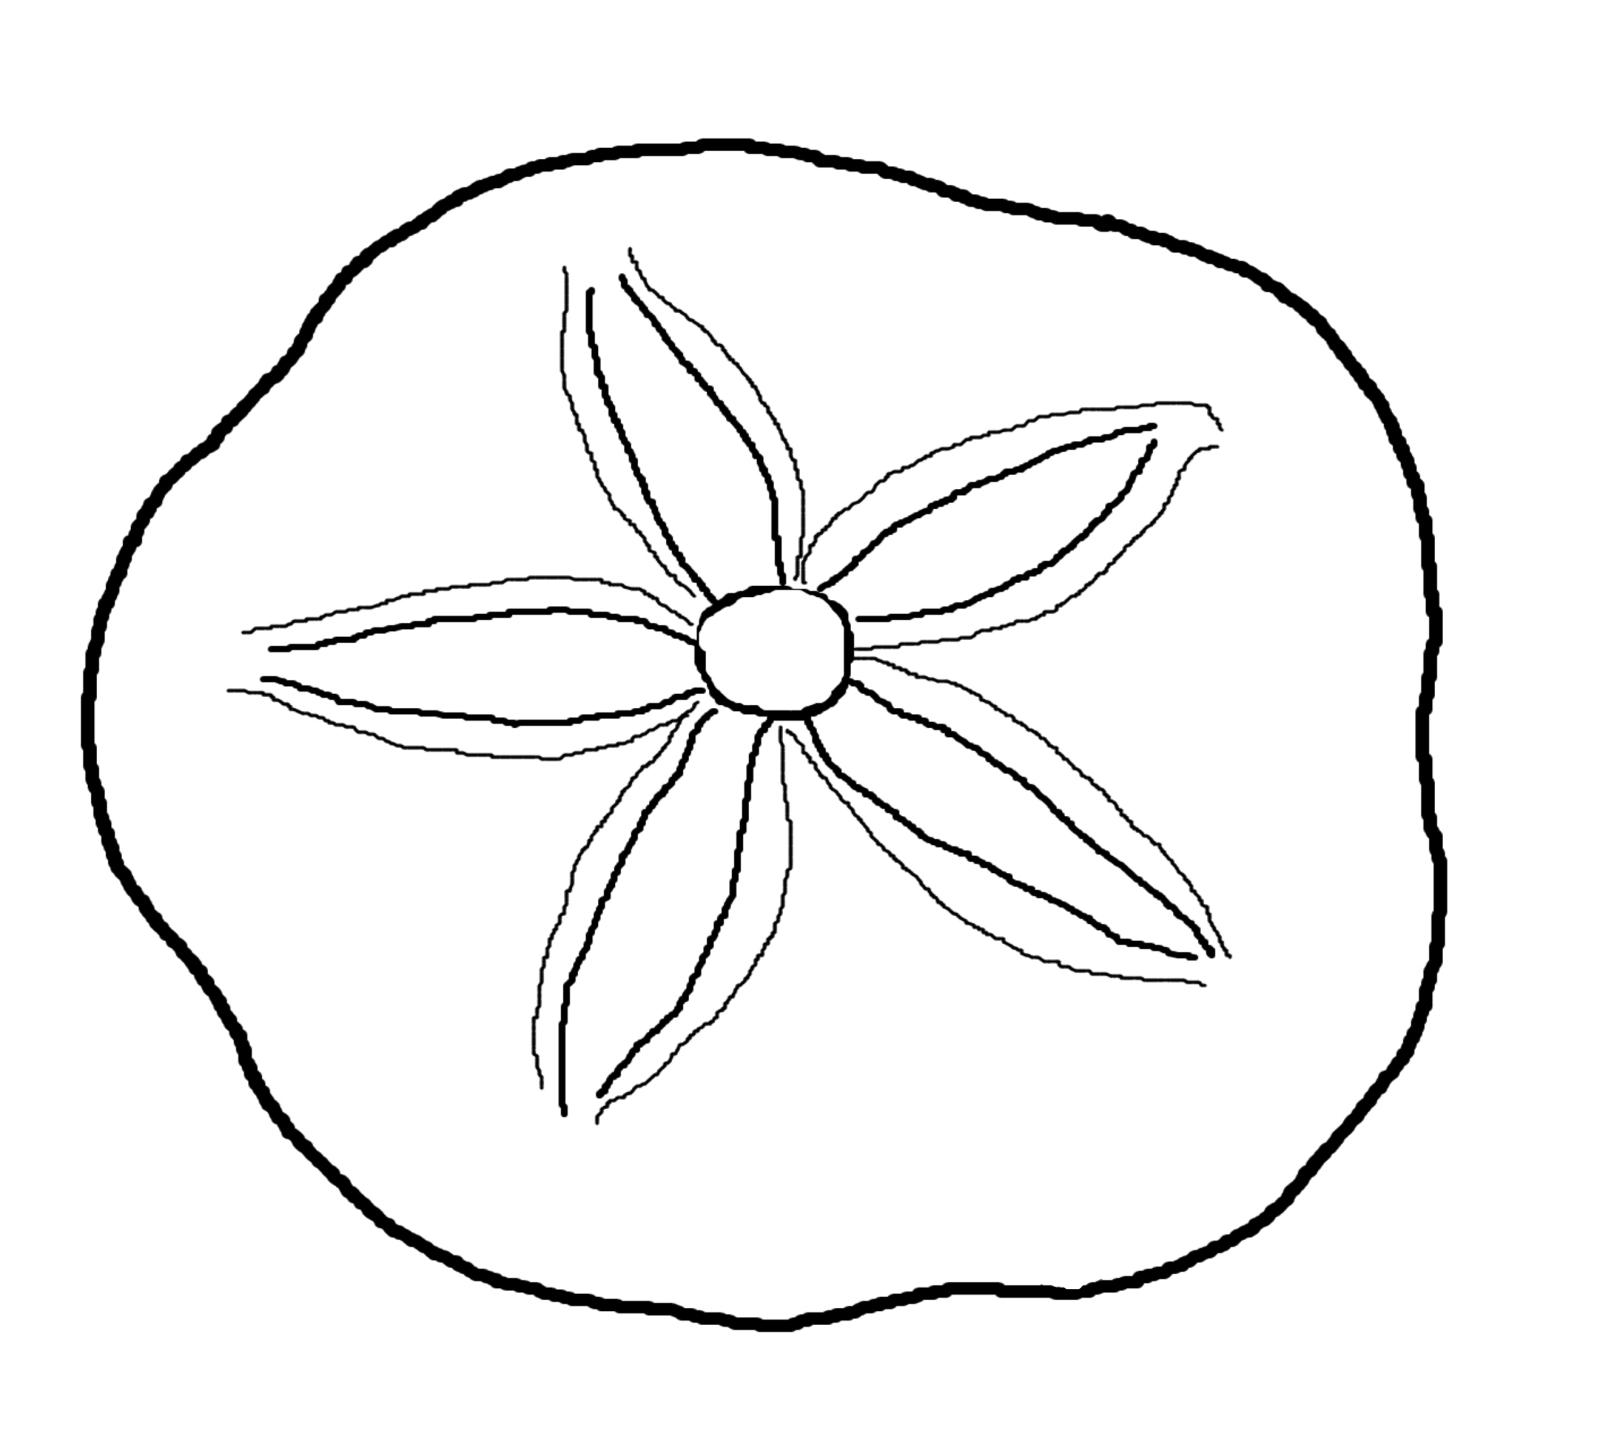 Sand Dollar Coloring Page - ClipArt Best